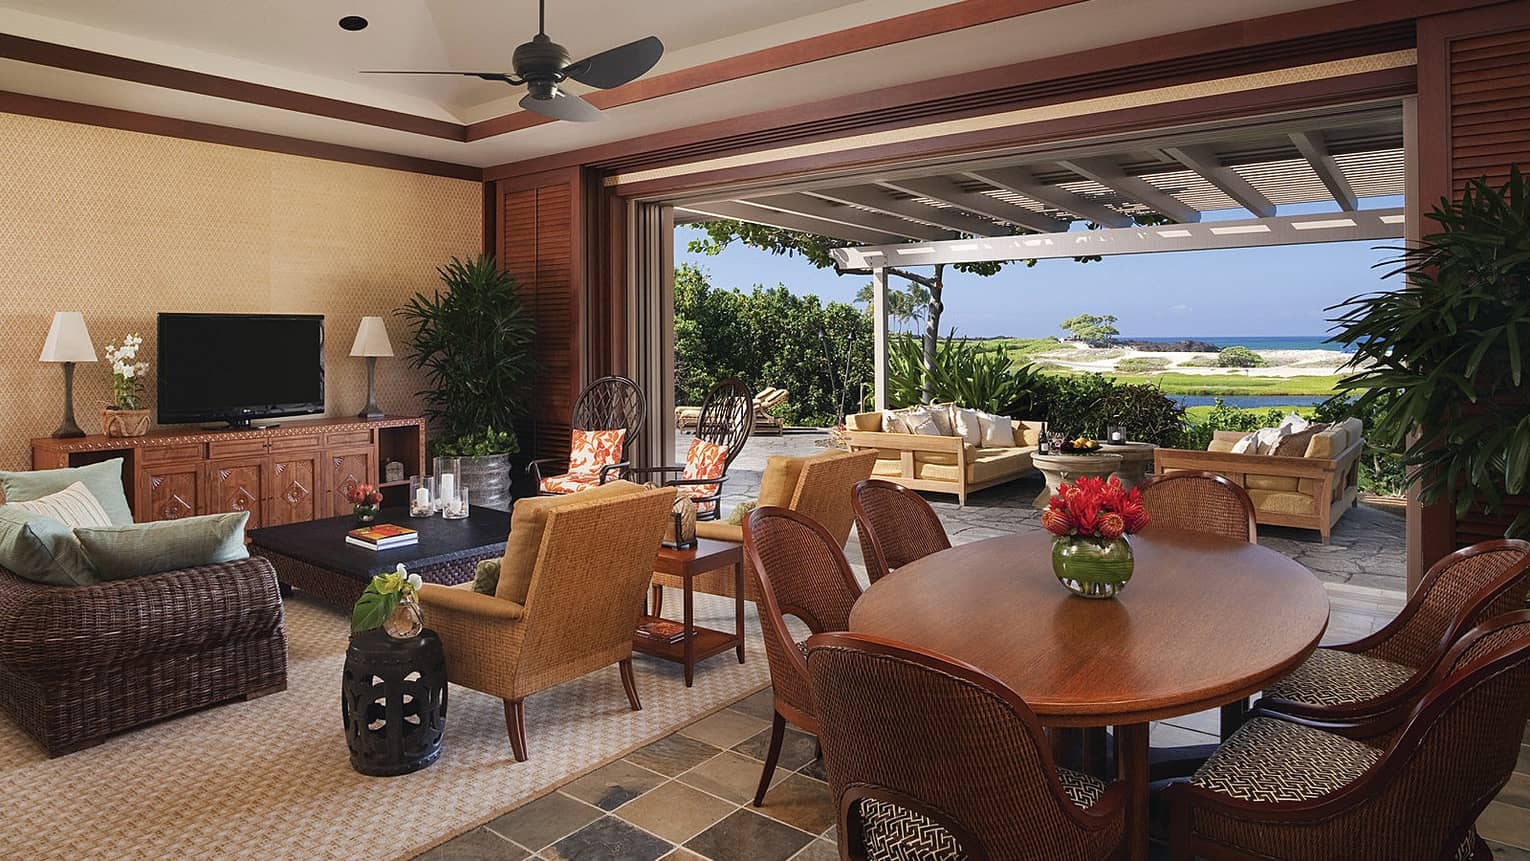 An open villa with a dining tabel and television in Hualalai, Hawaii